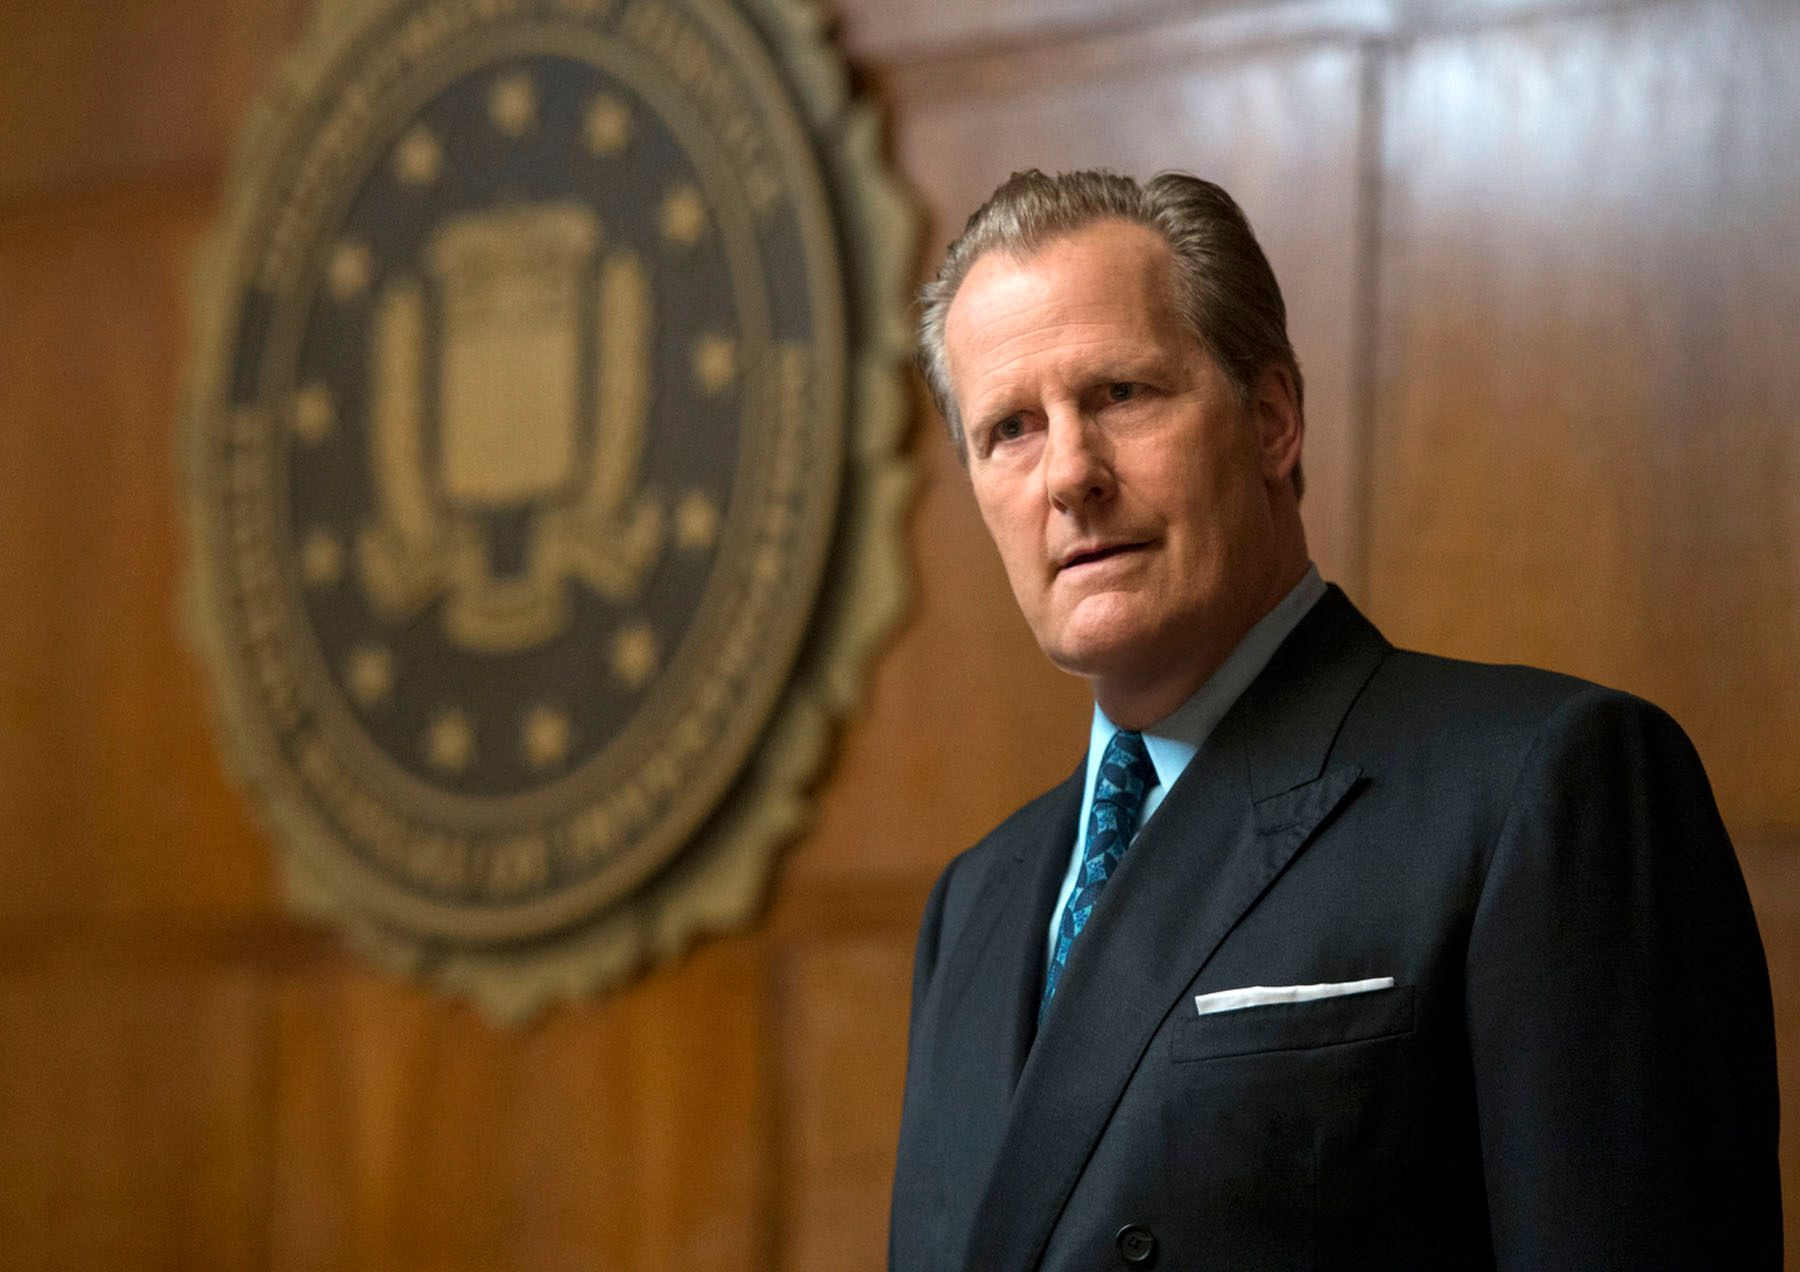 Hulu series 'The Looming Tower' powerfully revisits the road to 9/11